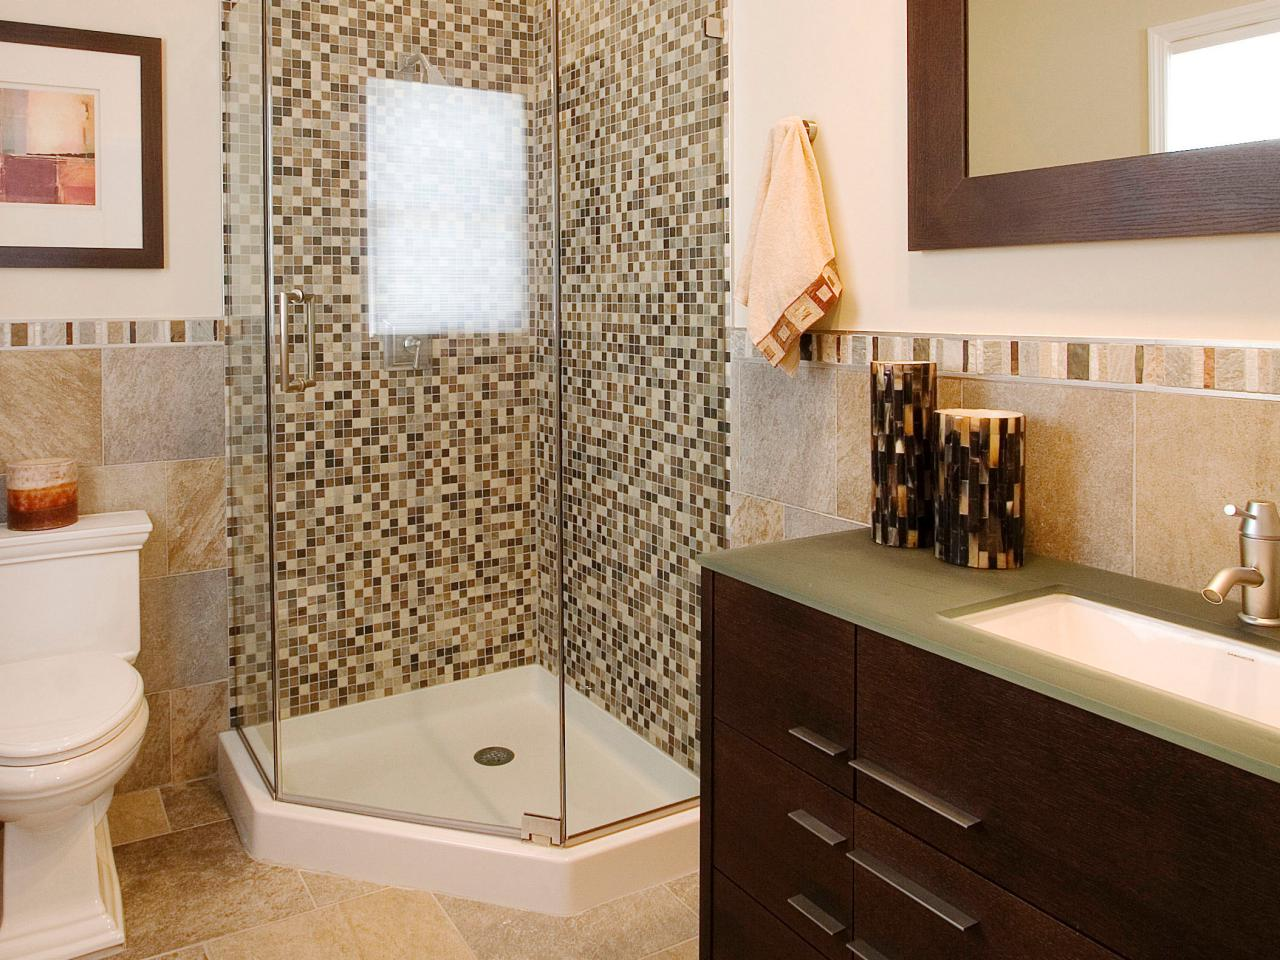 Superb Remodel Small Bathroom Ideas With Visible Shower Area Beside Toilet